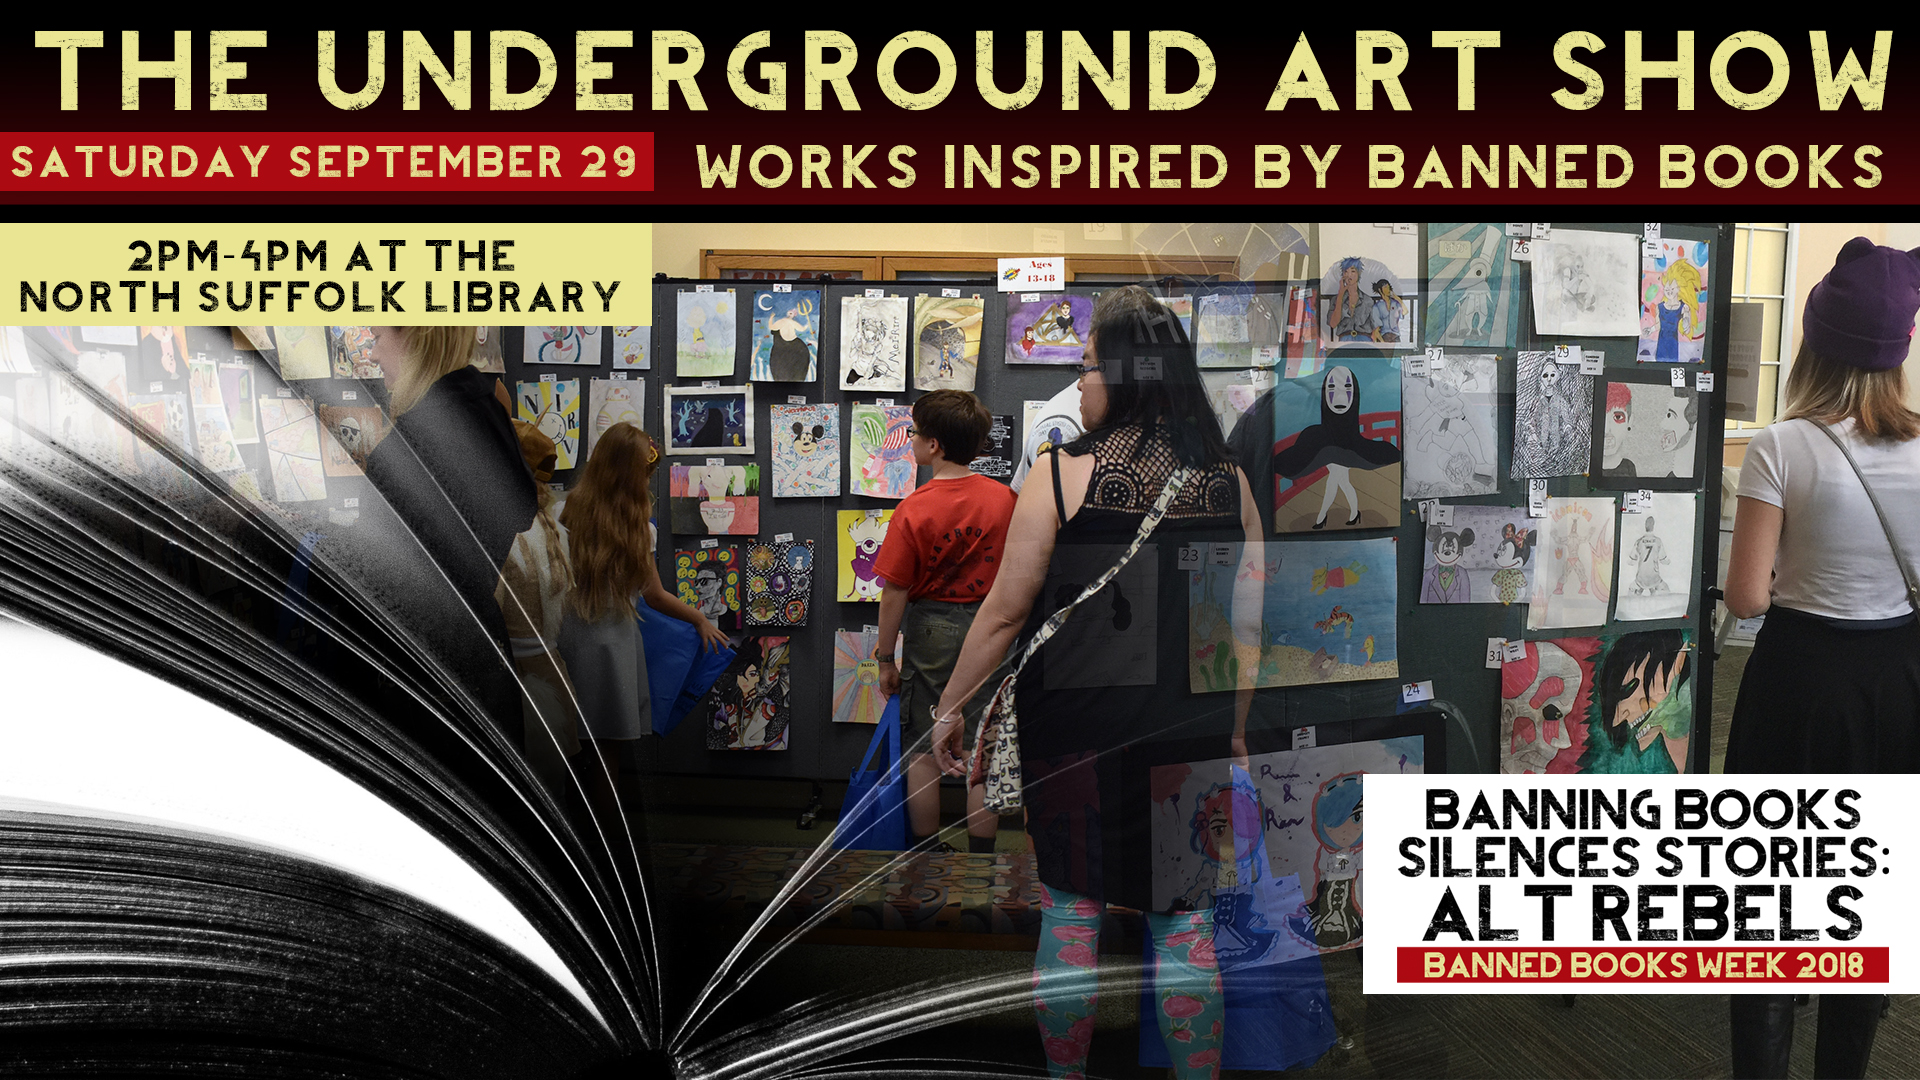 7bdb0dffa2 The Underground Art Show  Works Inspired by Banned Books